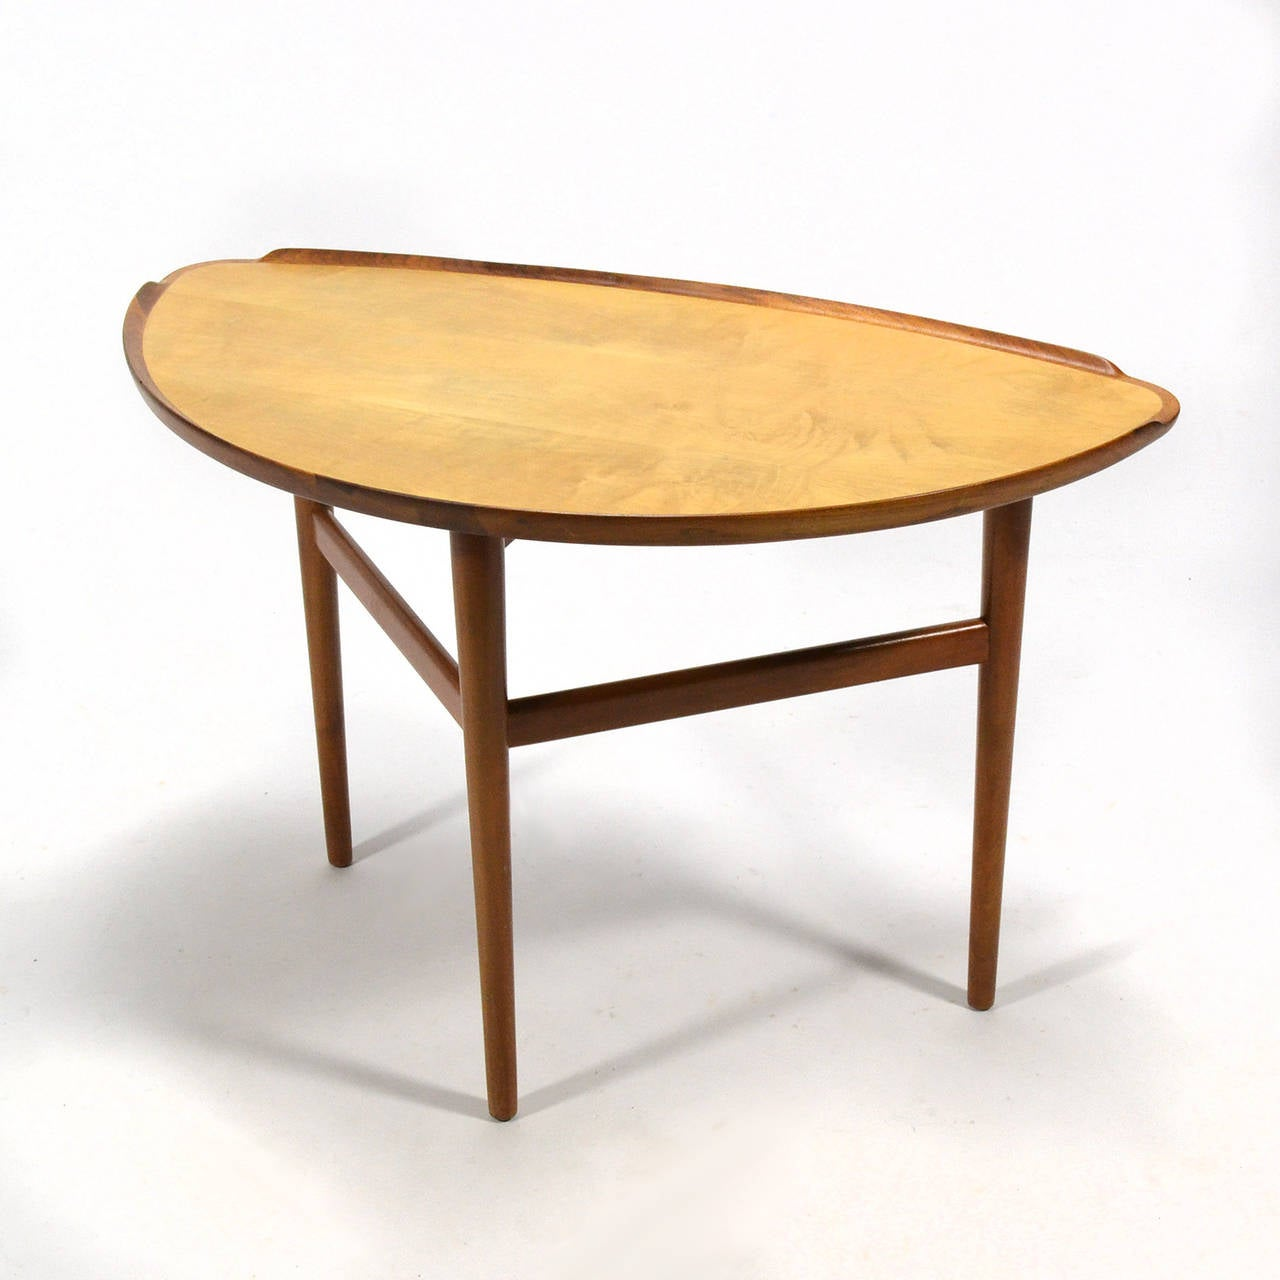 Sycamore Finn Juhl Table For Sale